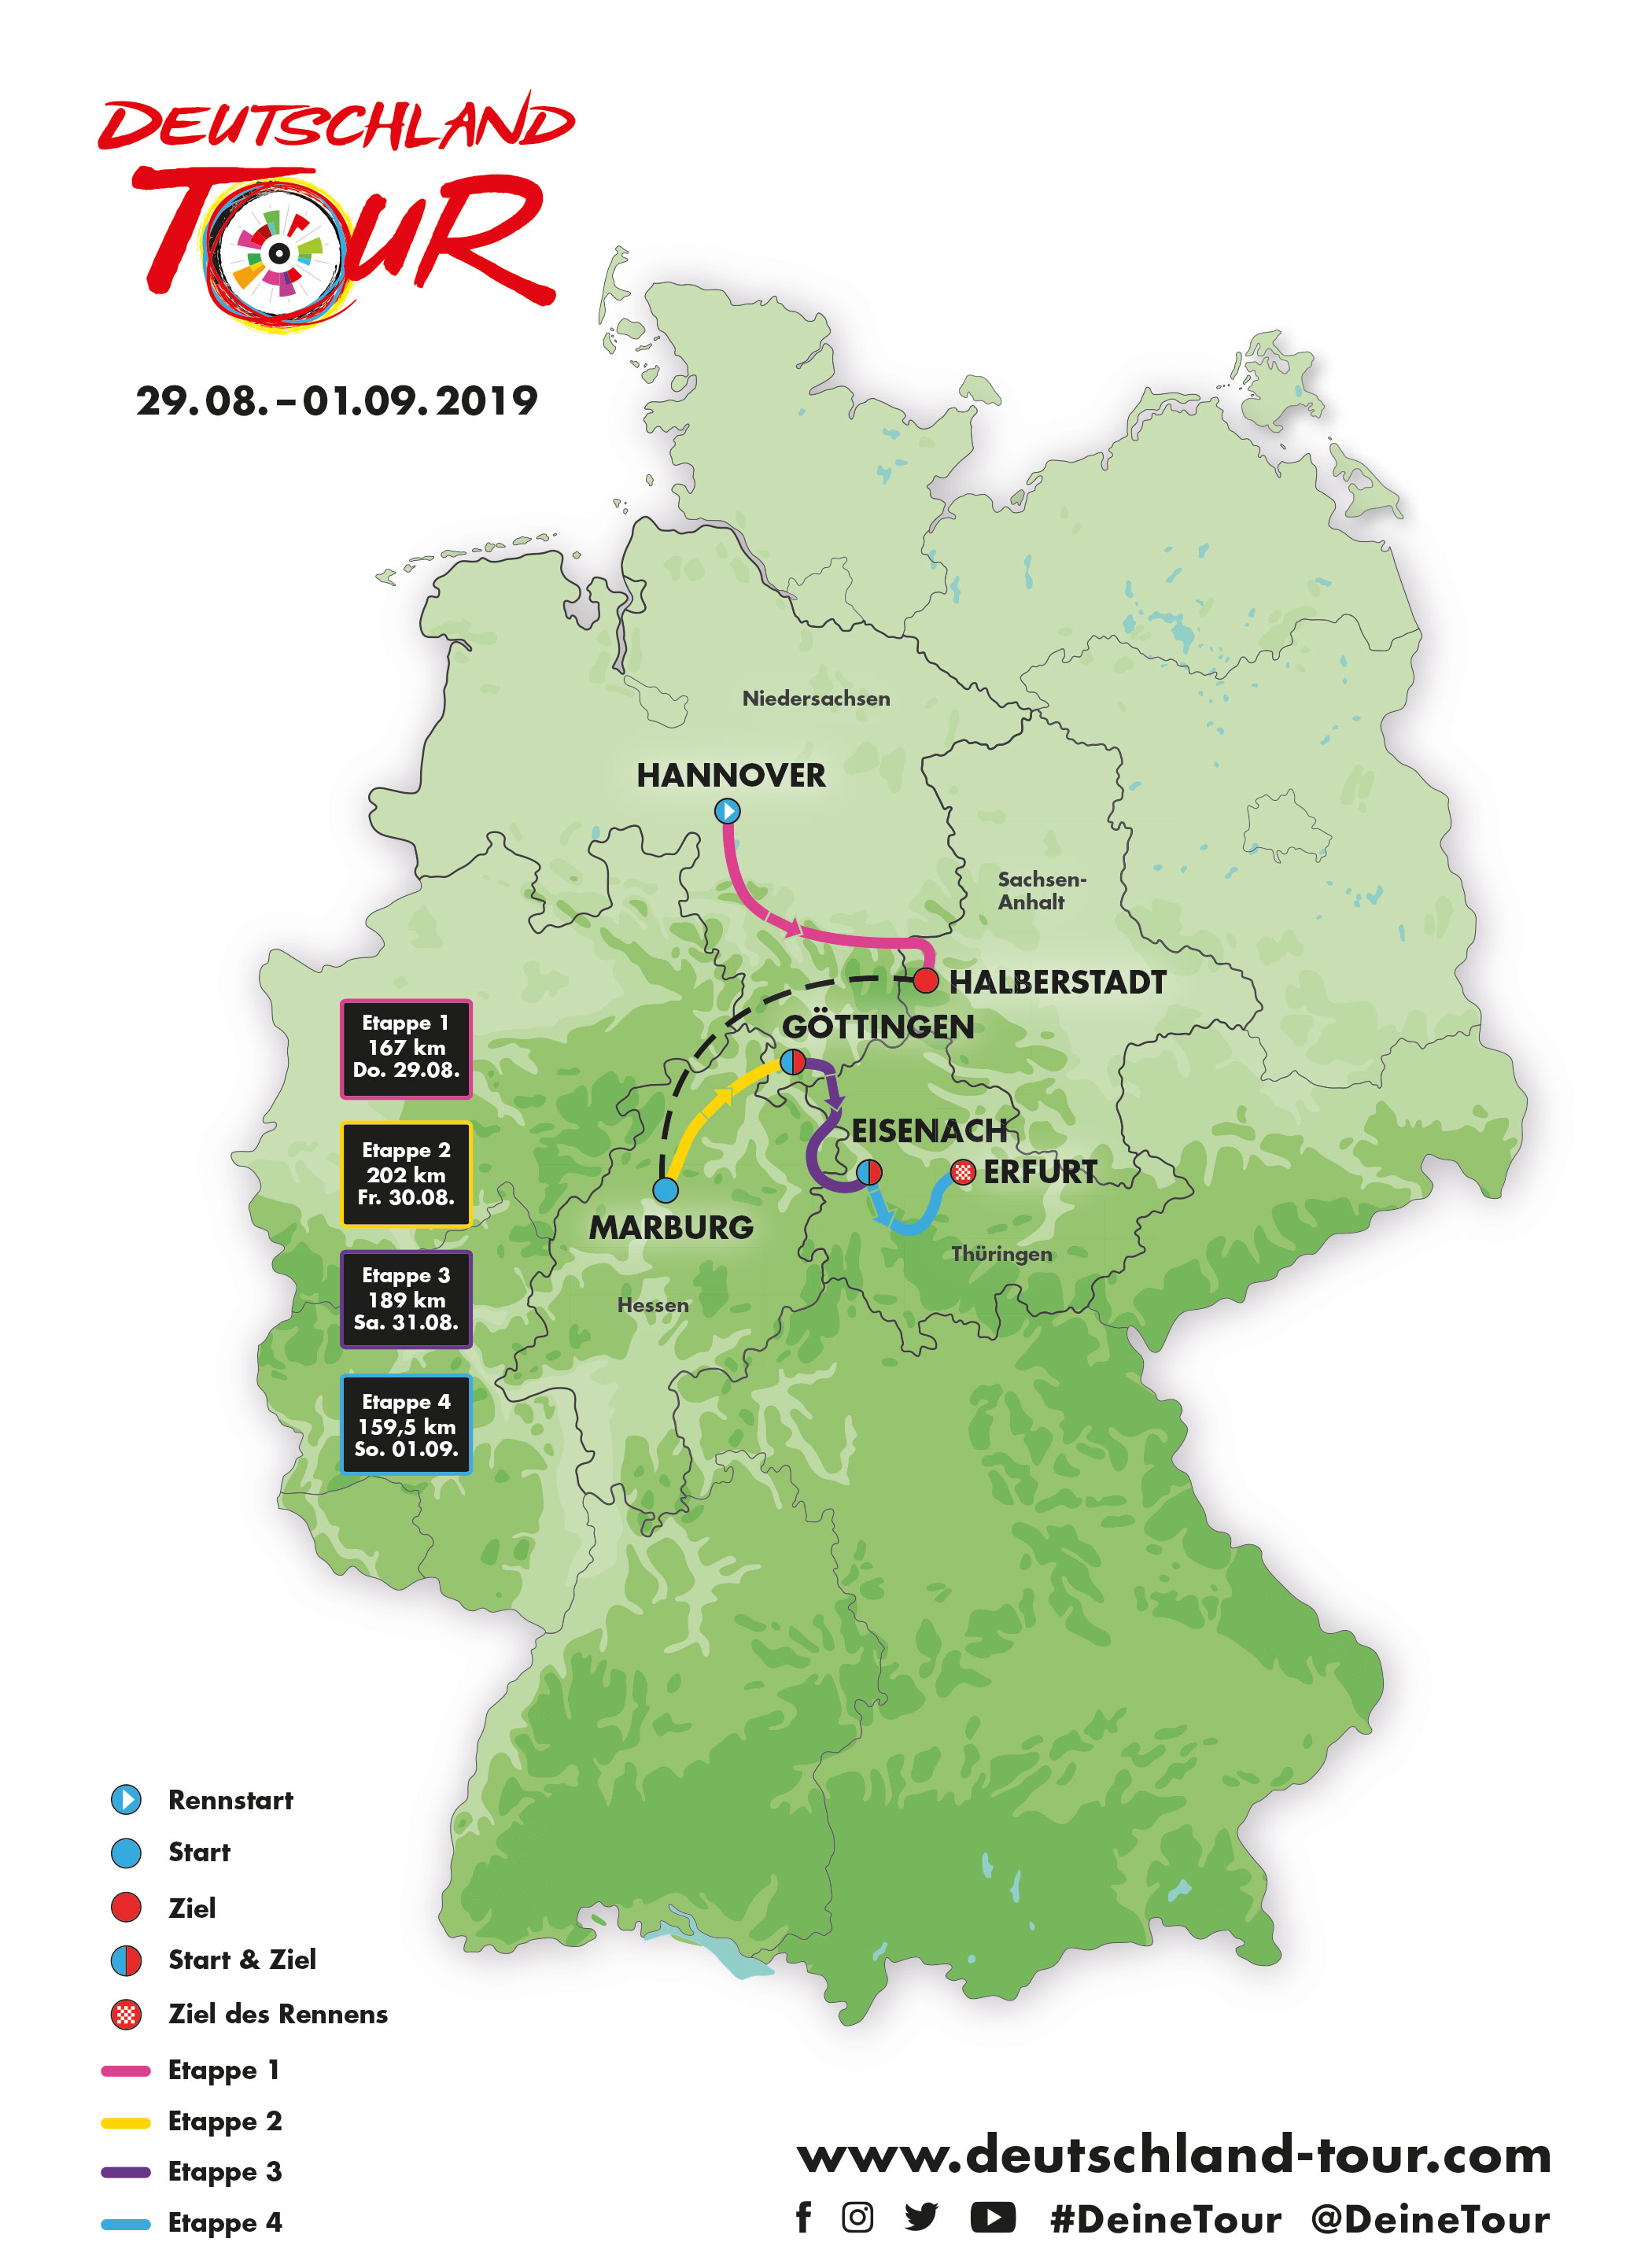 Map Of Deutschland Germany.Deutschland Tour Homepage 2019 Official Homepage Of The